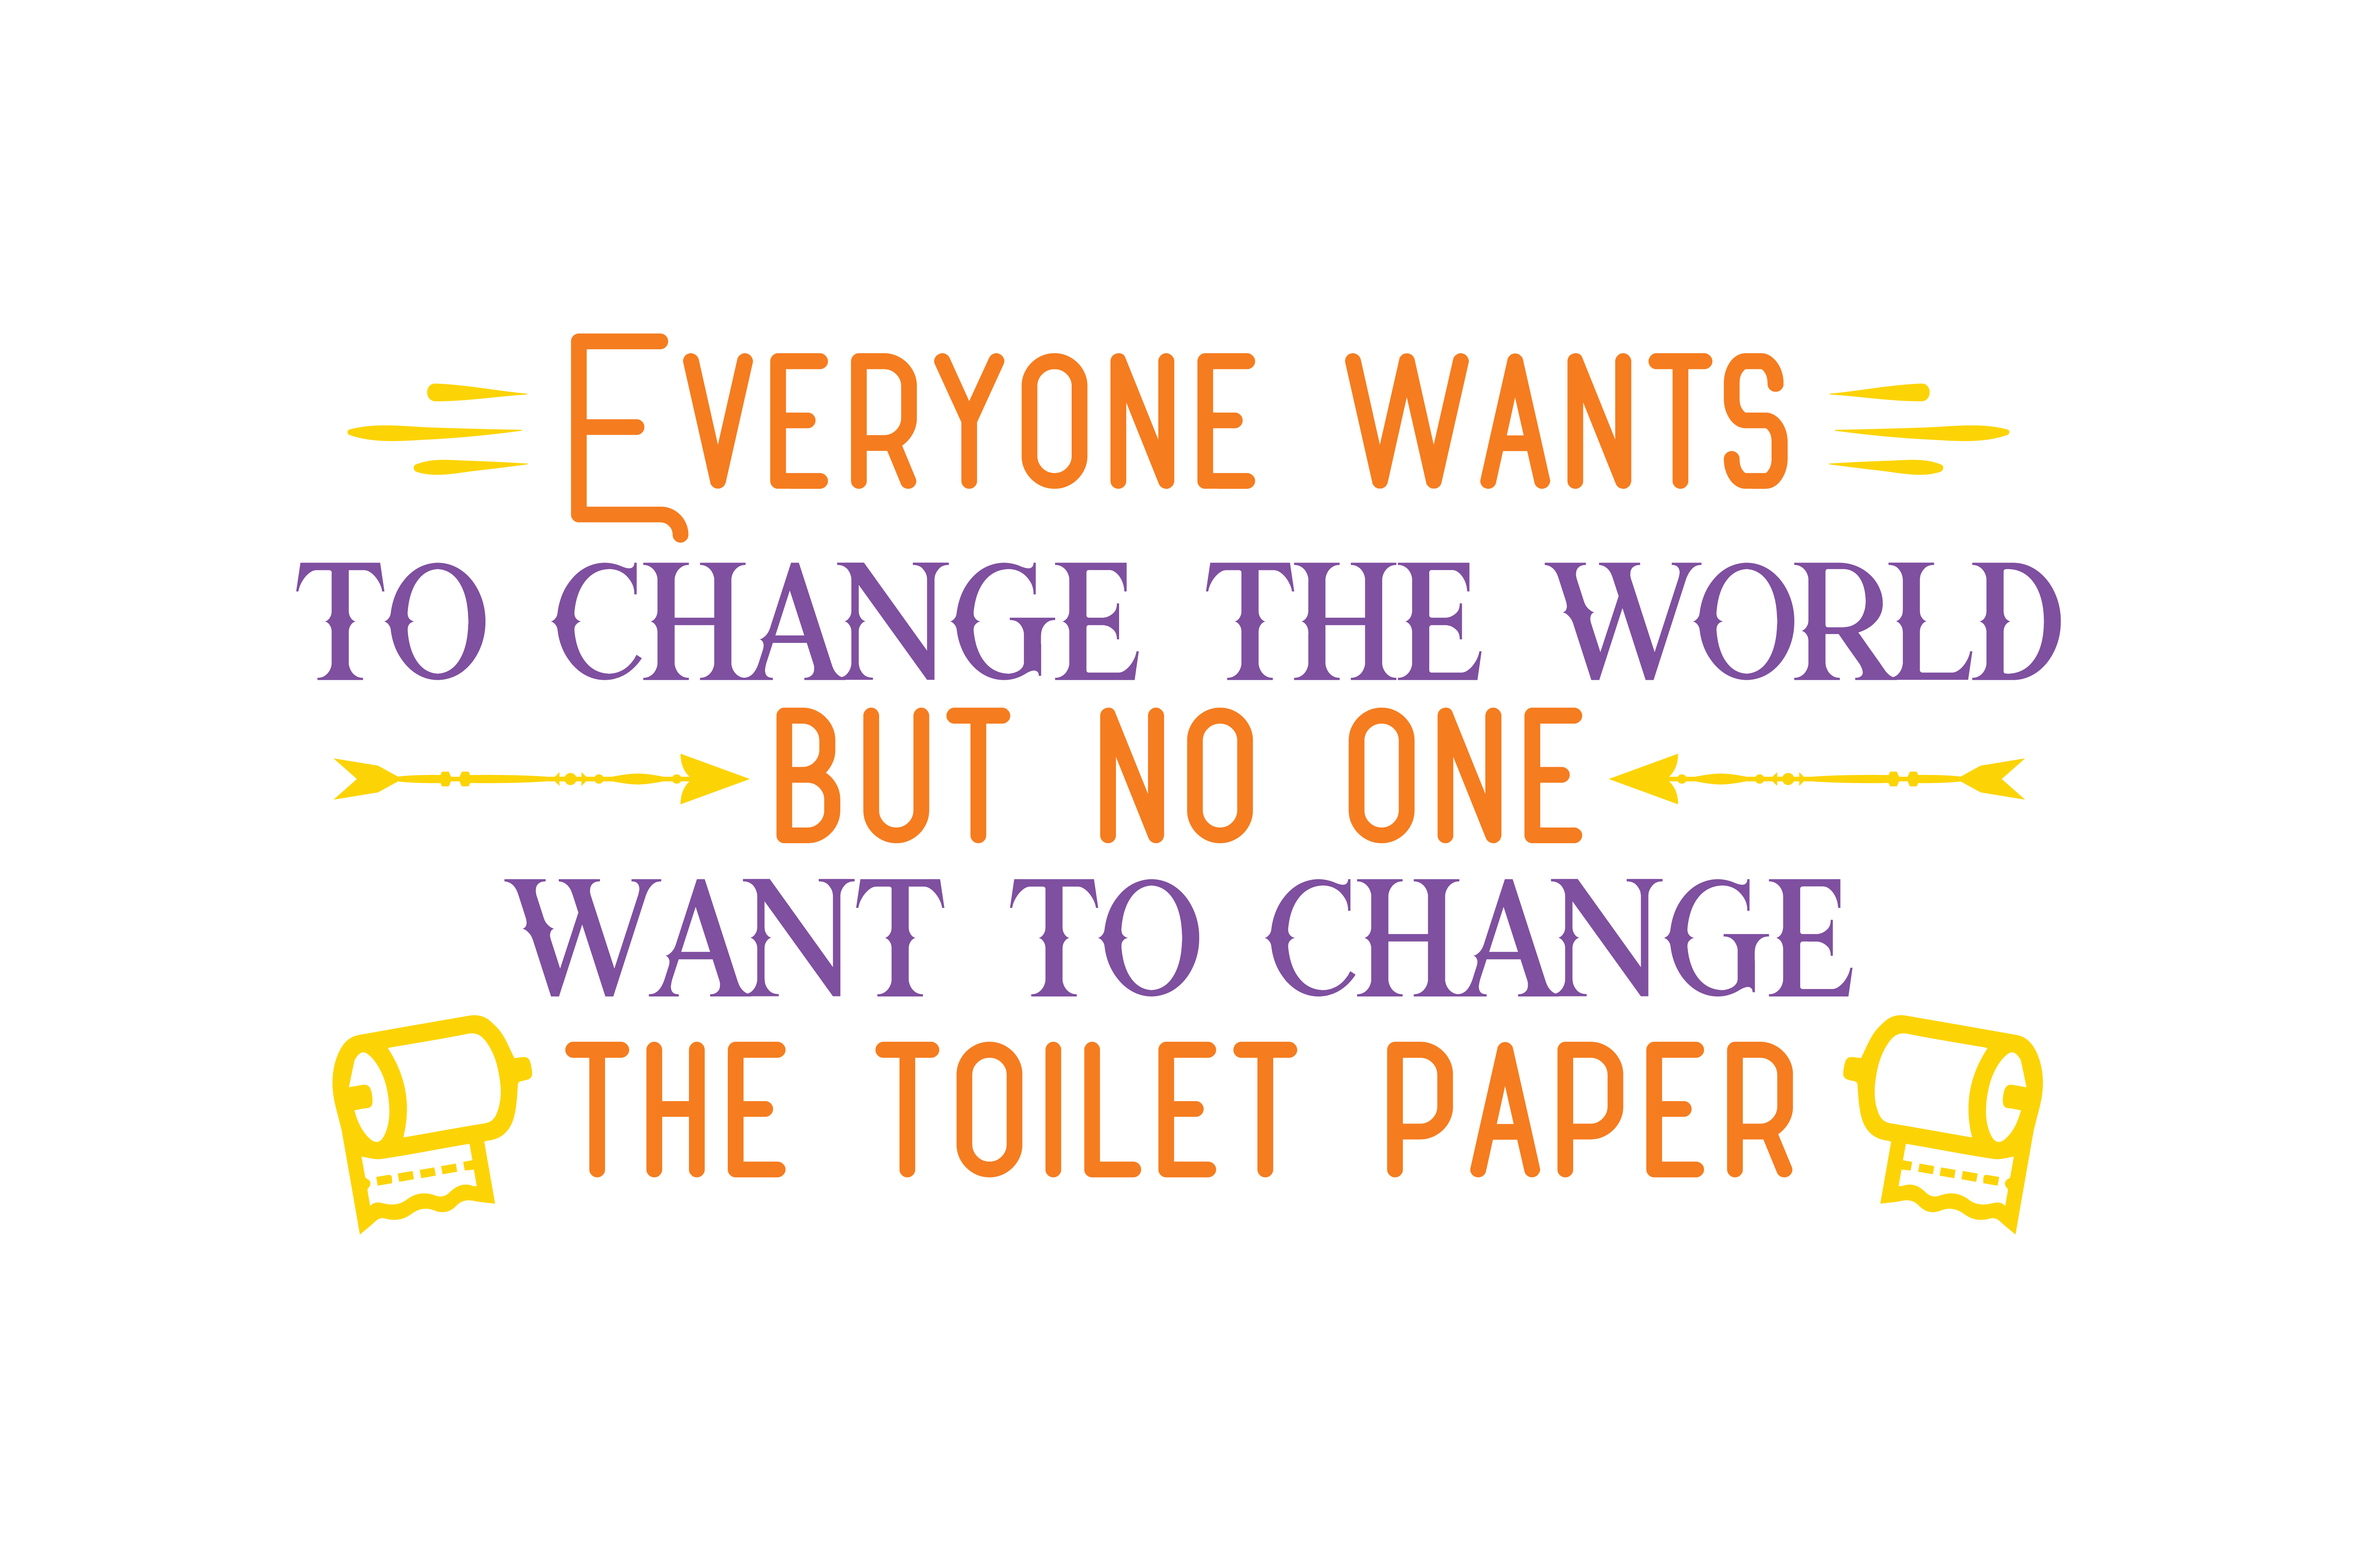 Download Free Everyone Wants To Change The World But No One Want To Change The for Cricut Explore, Silhouette and other cutting machines.